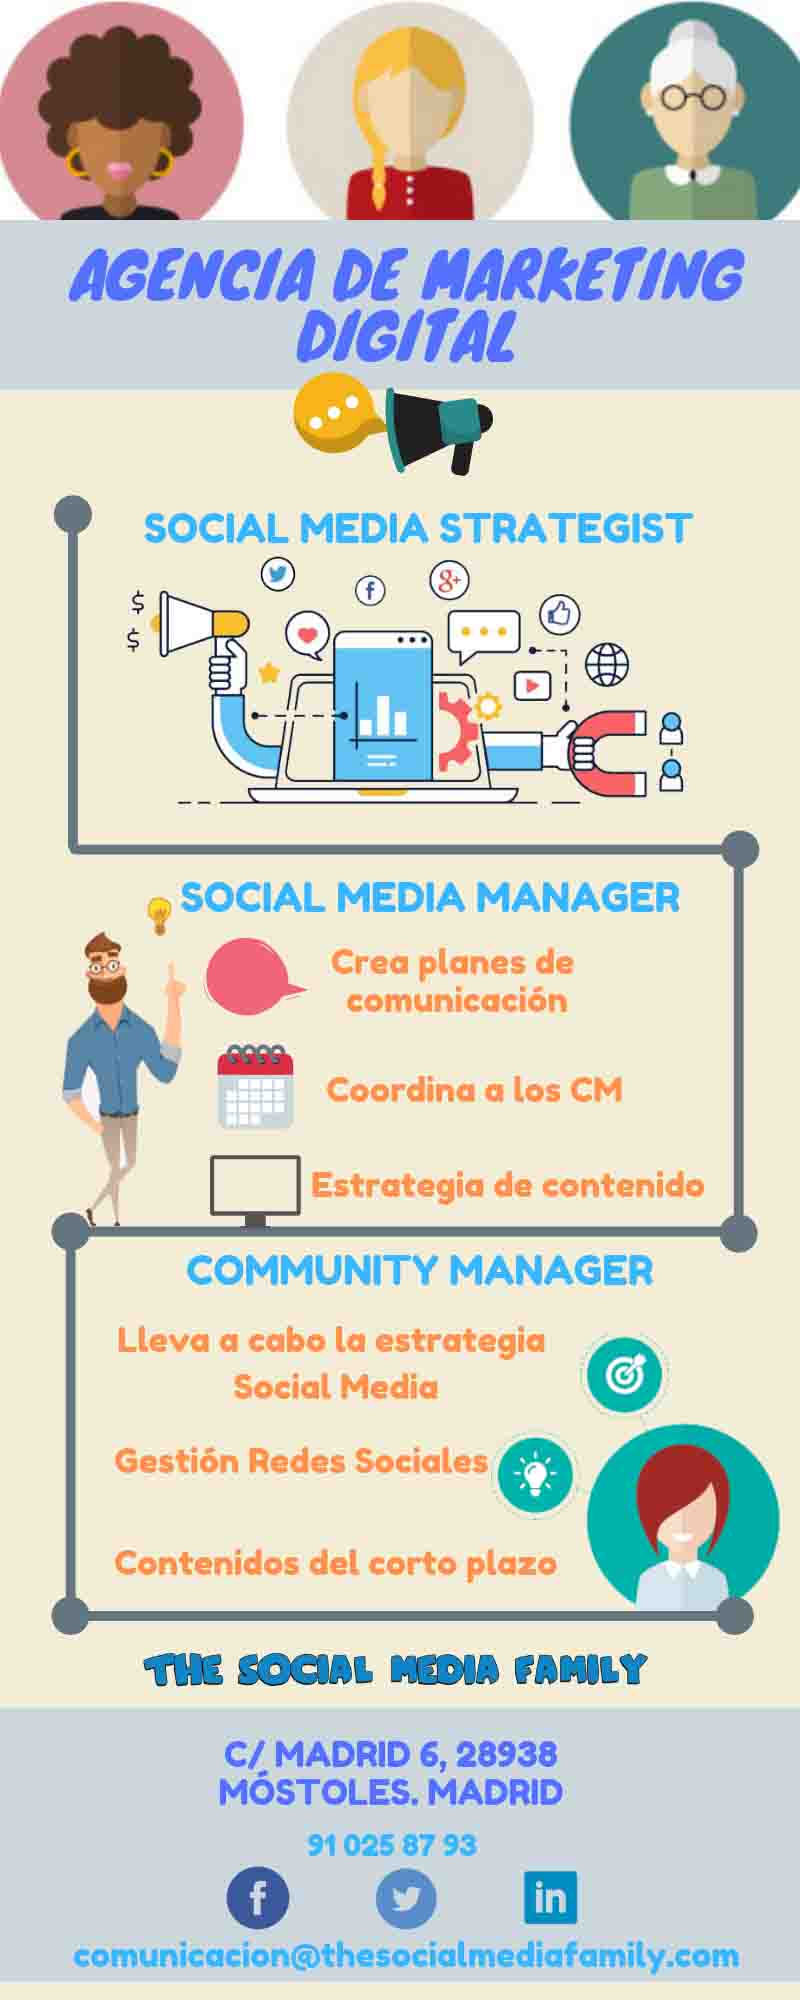 organigrama-agencia-marketing-digital